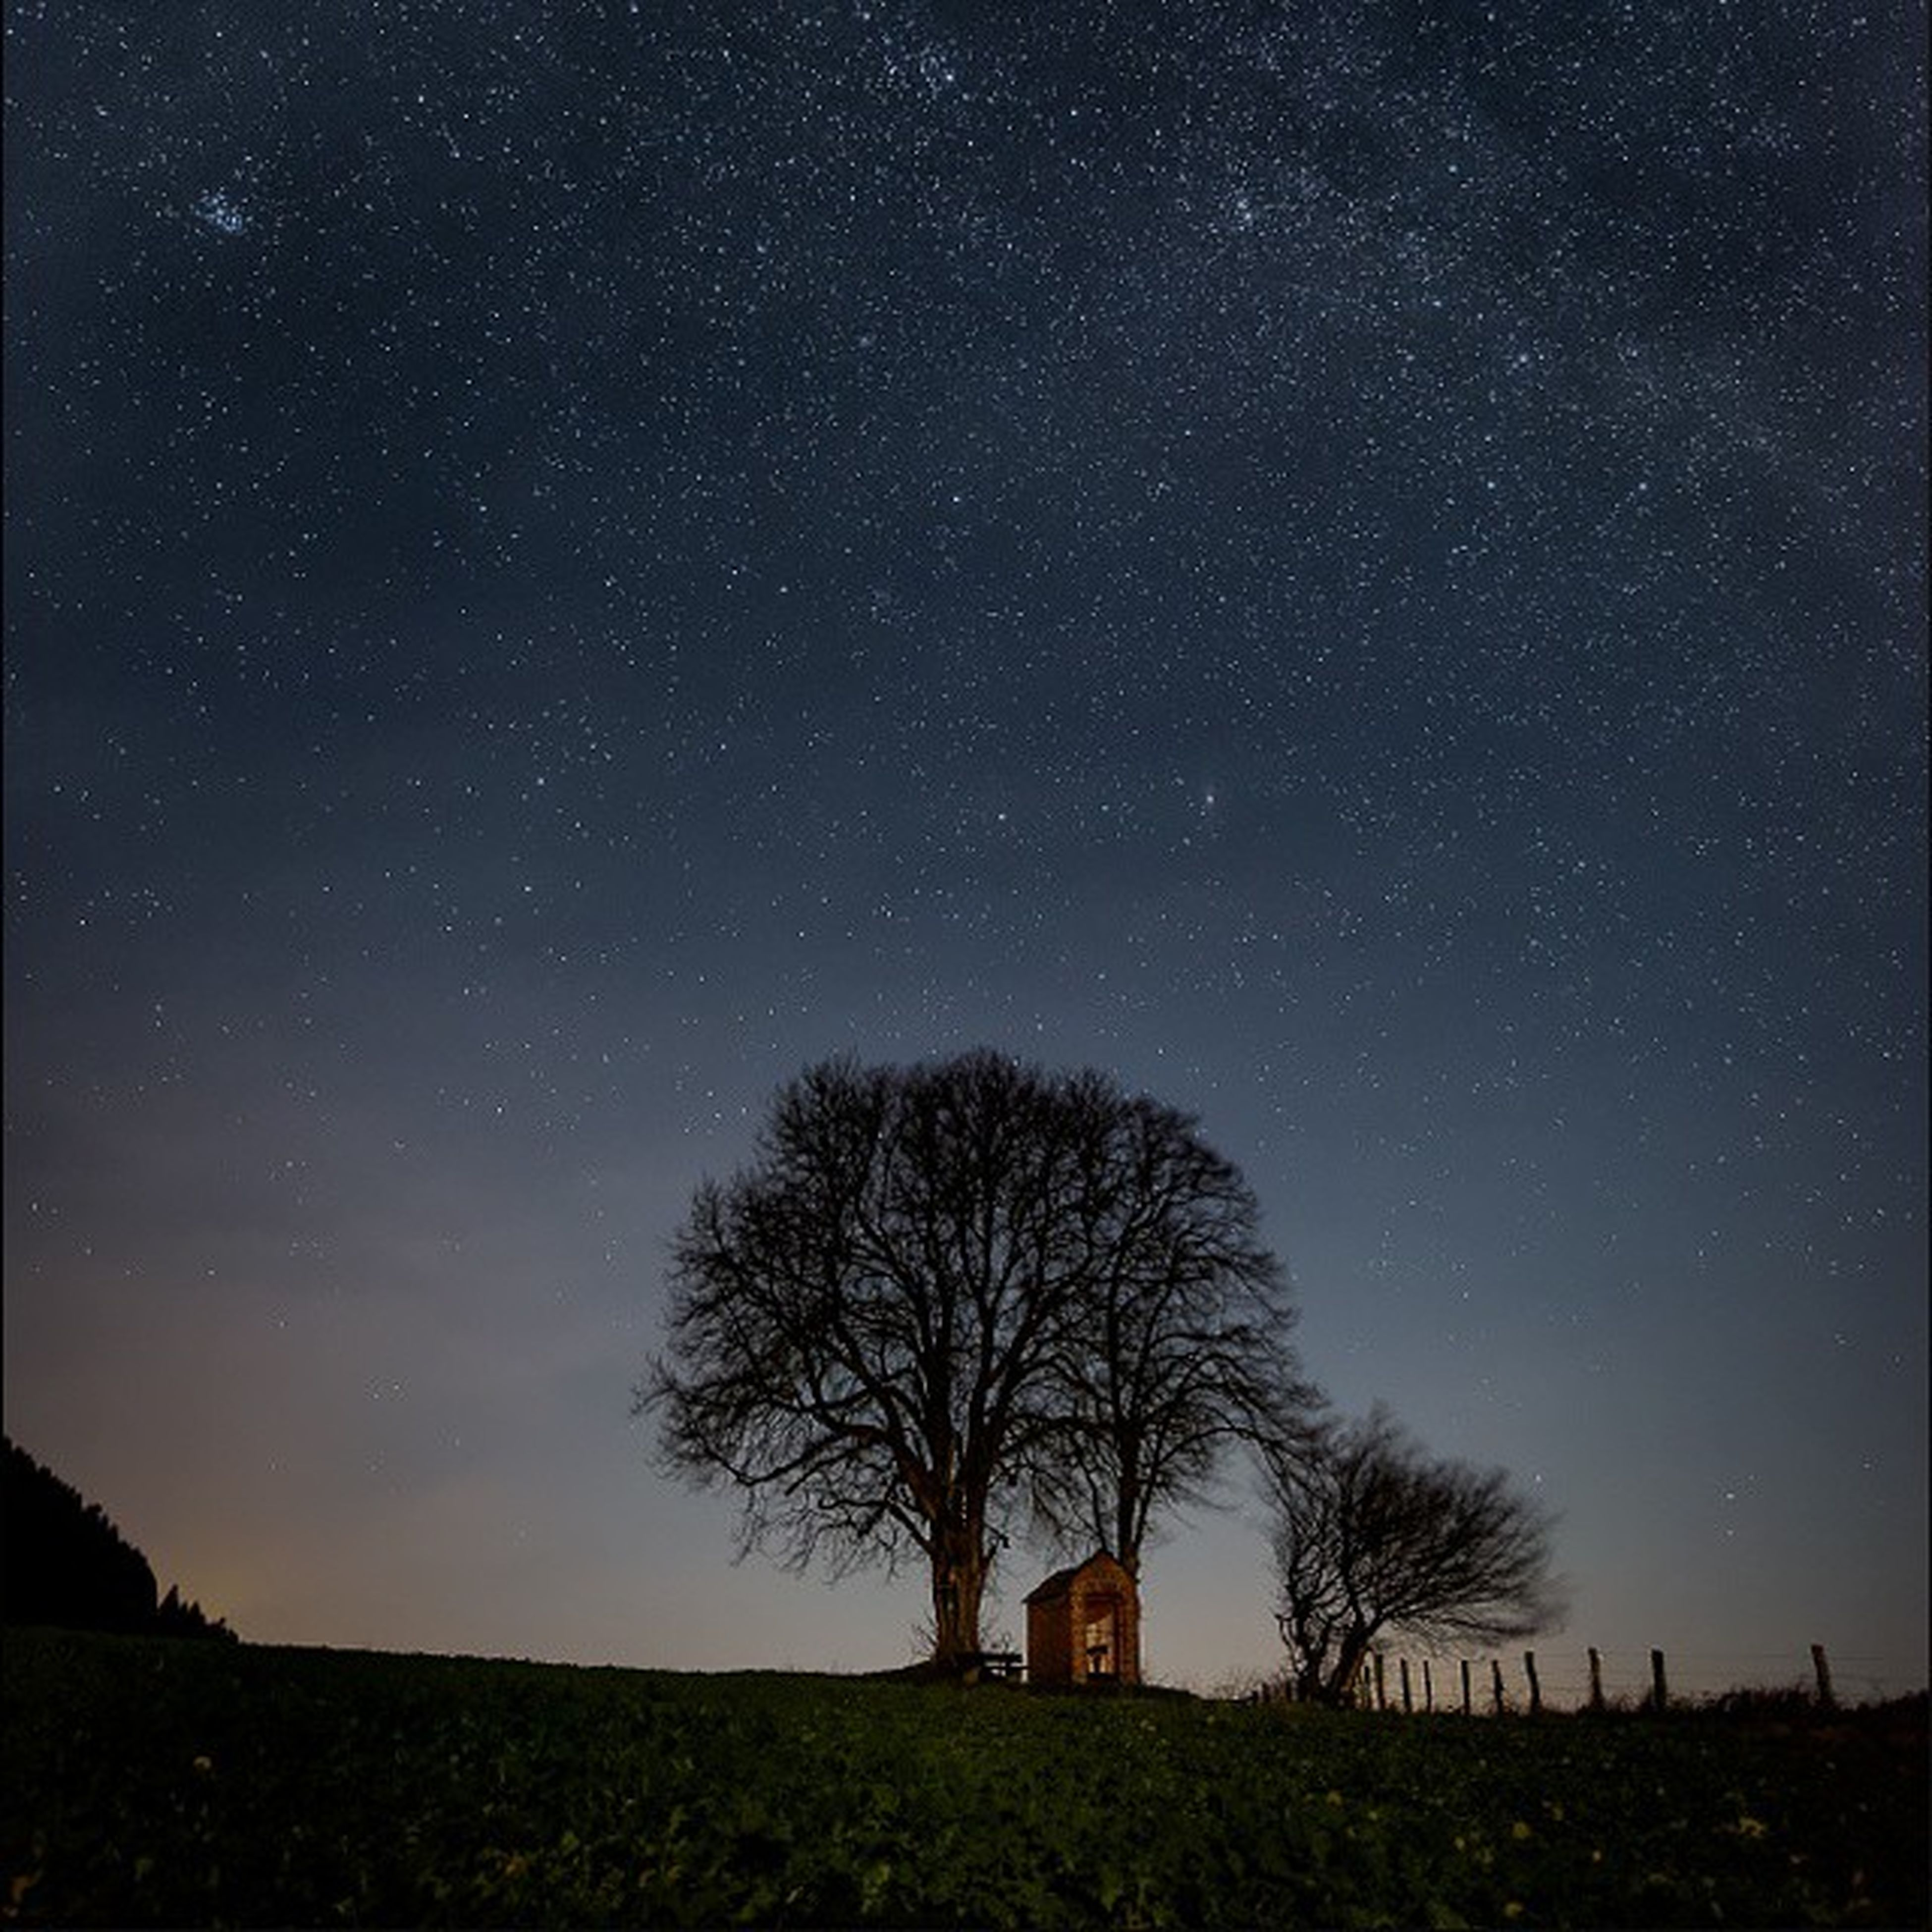 tree, night, star - space, tranquil scene, star field, tranquility, scenics, astronomy, beauty in nature, landscape, silhouette, nature, sky, galaxy, bare tree, idyllic, star, field, dark, low angle view